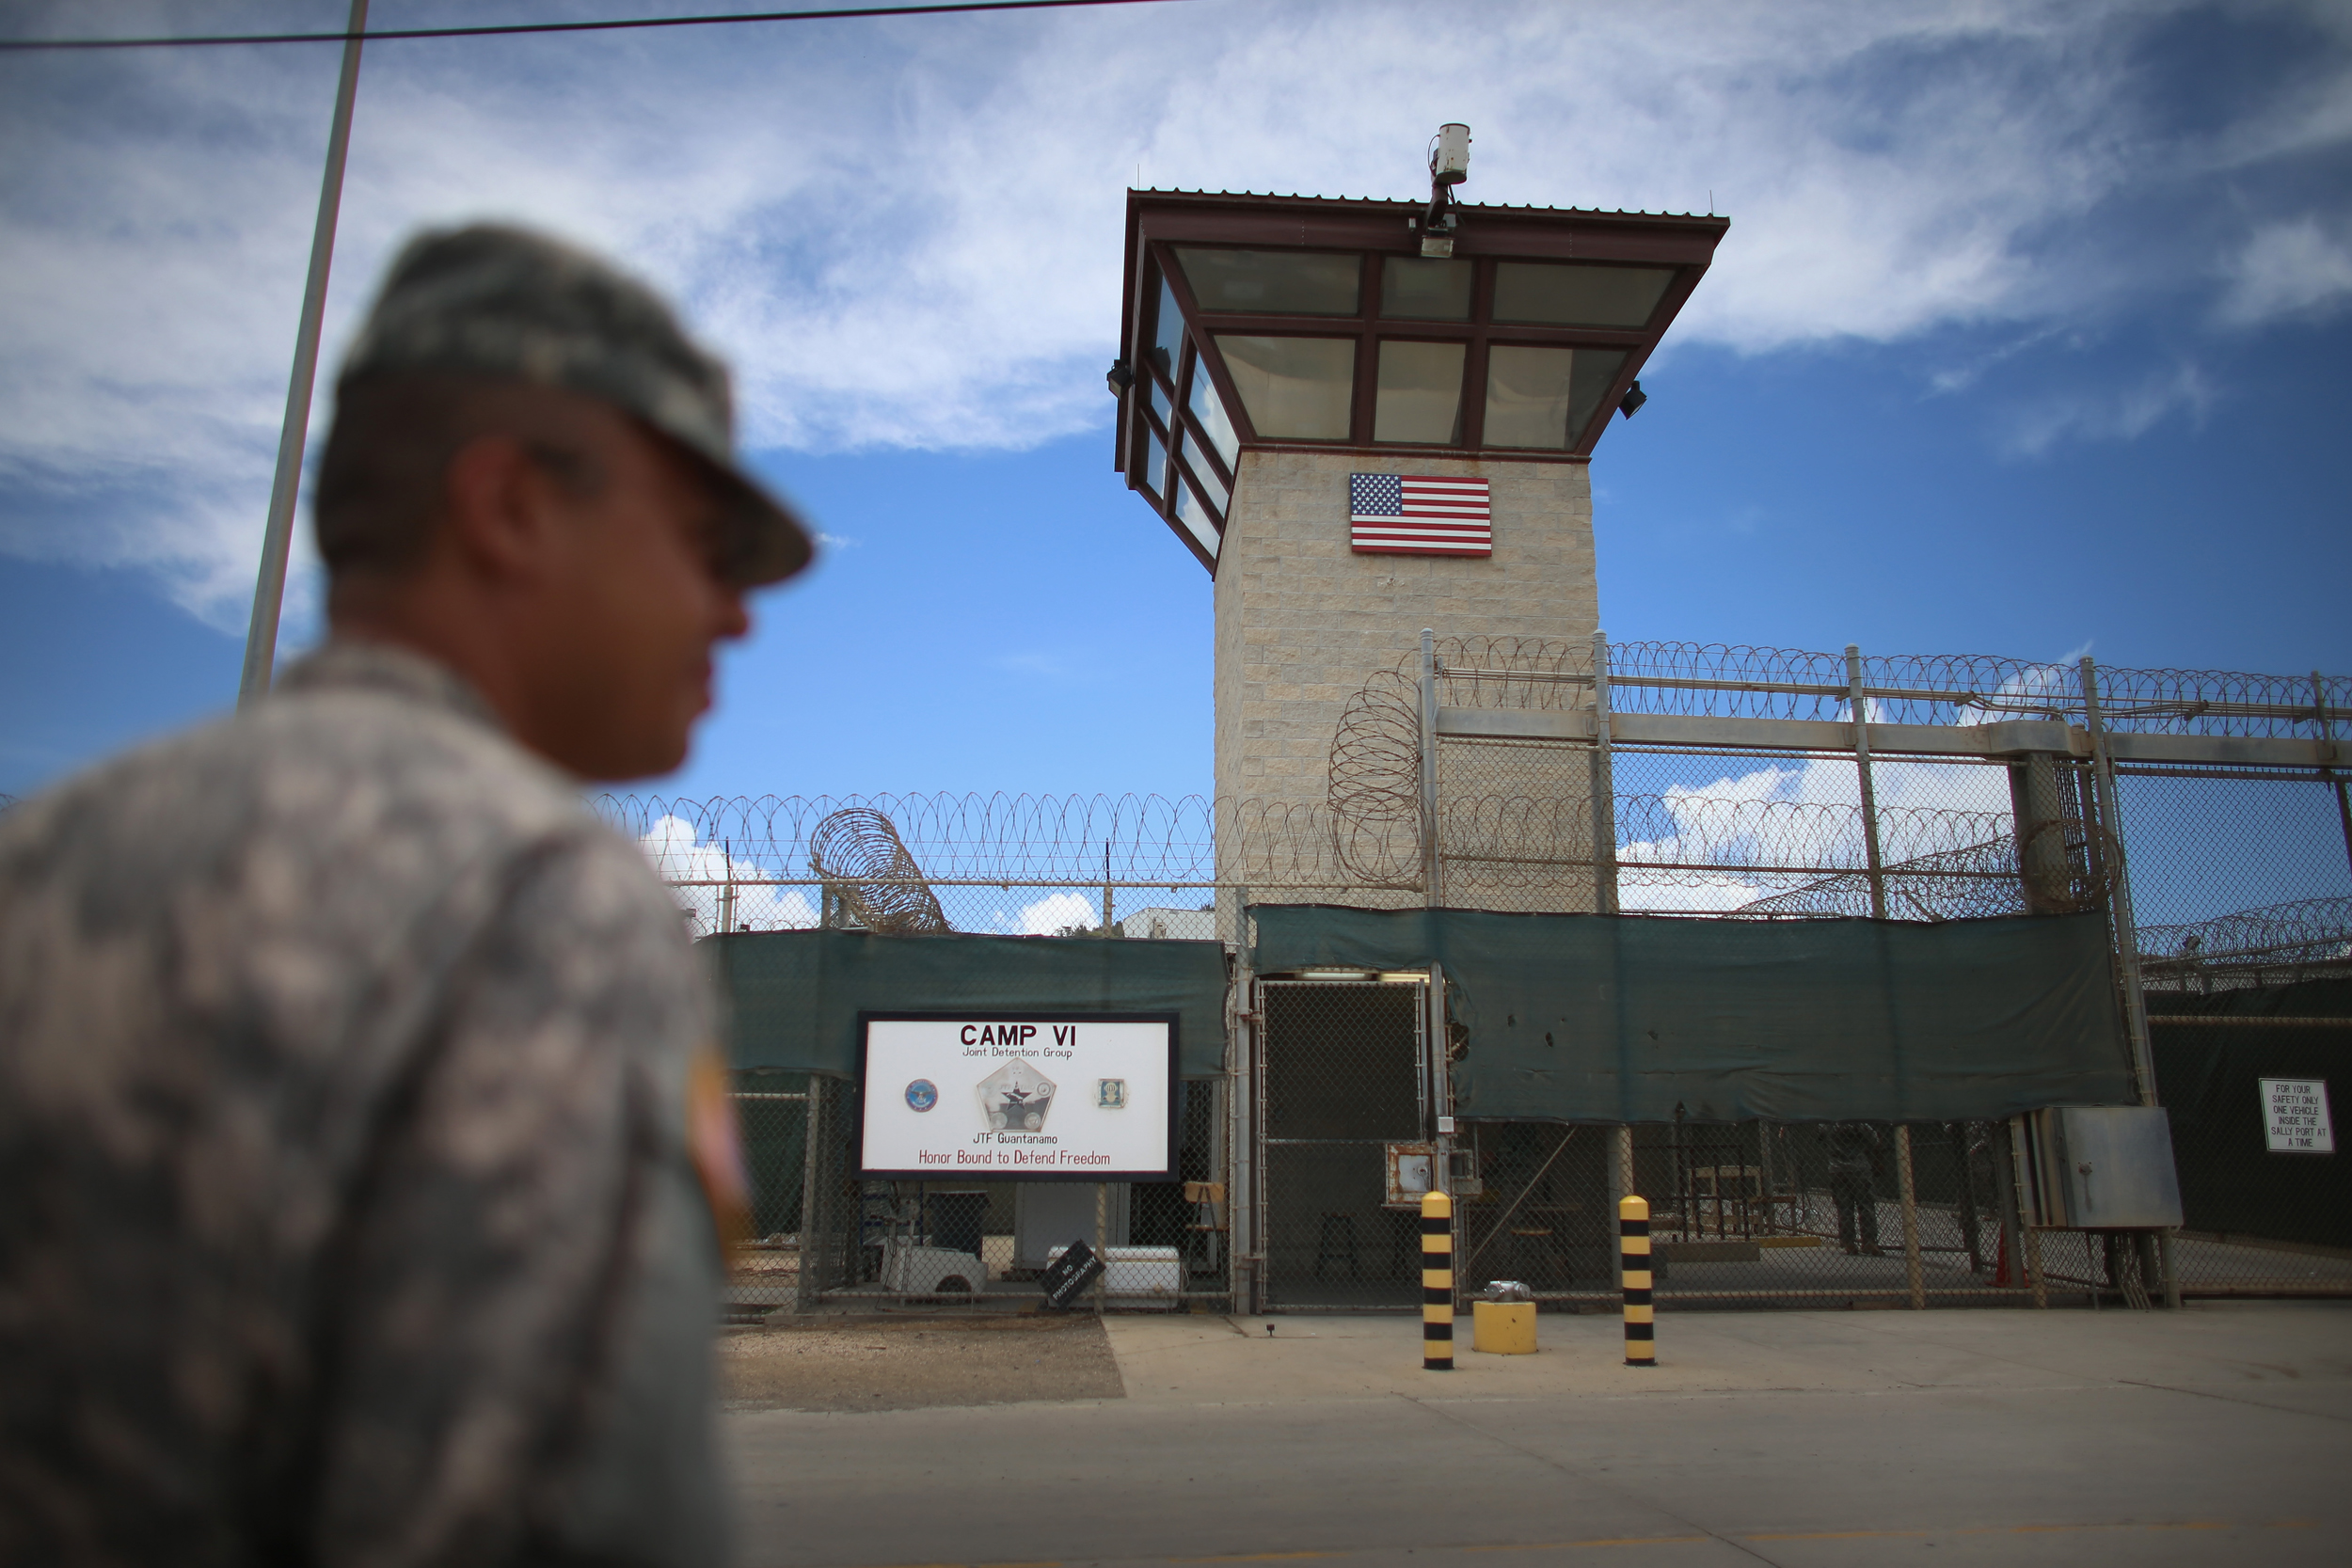 'The system is set up to fail': 20 years on, 9/11 mastermind still awaits Guantanamo trial